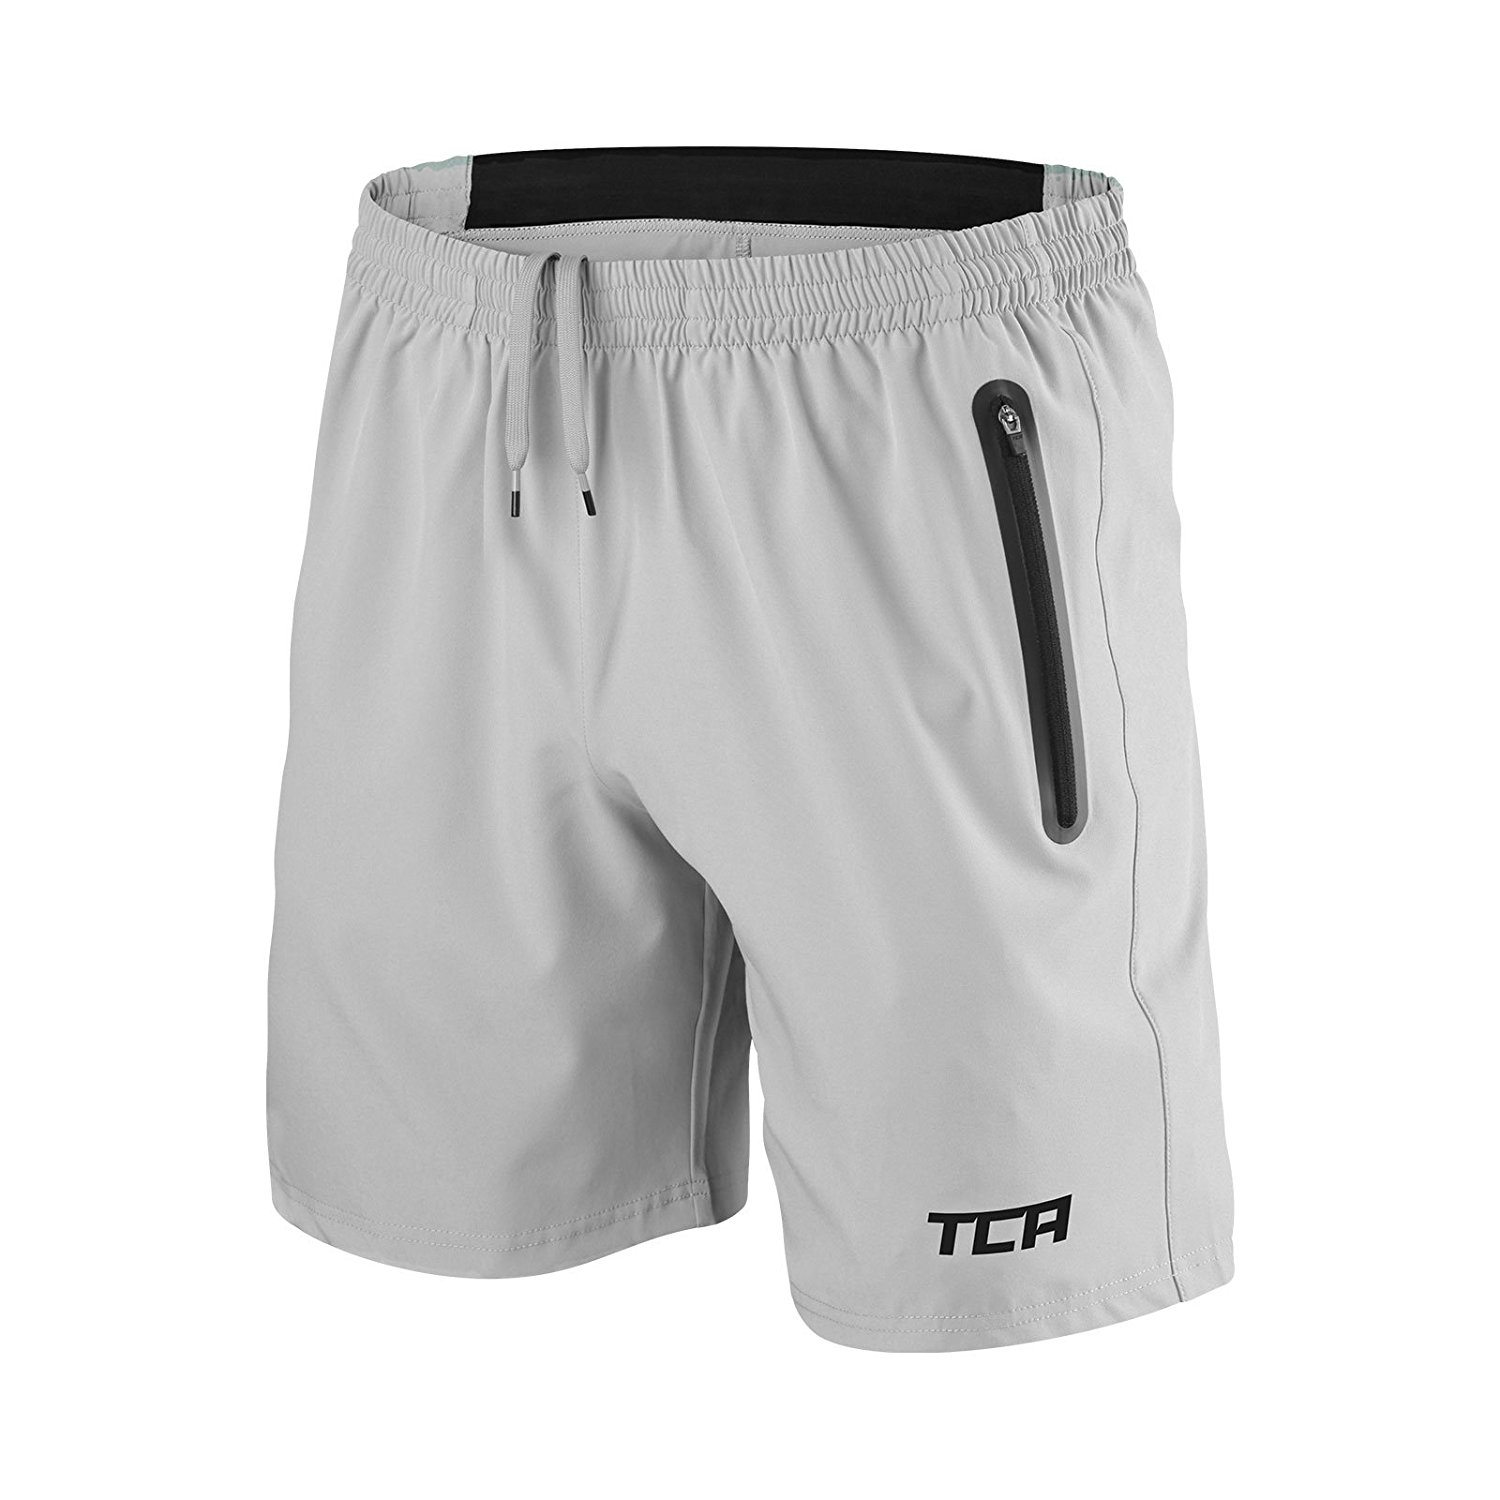 Men's Training Shorts with Zipper Pockets